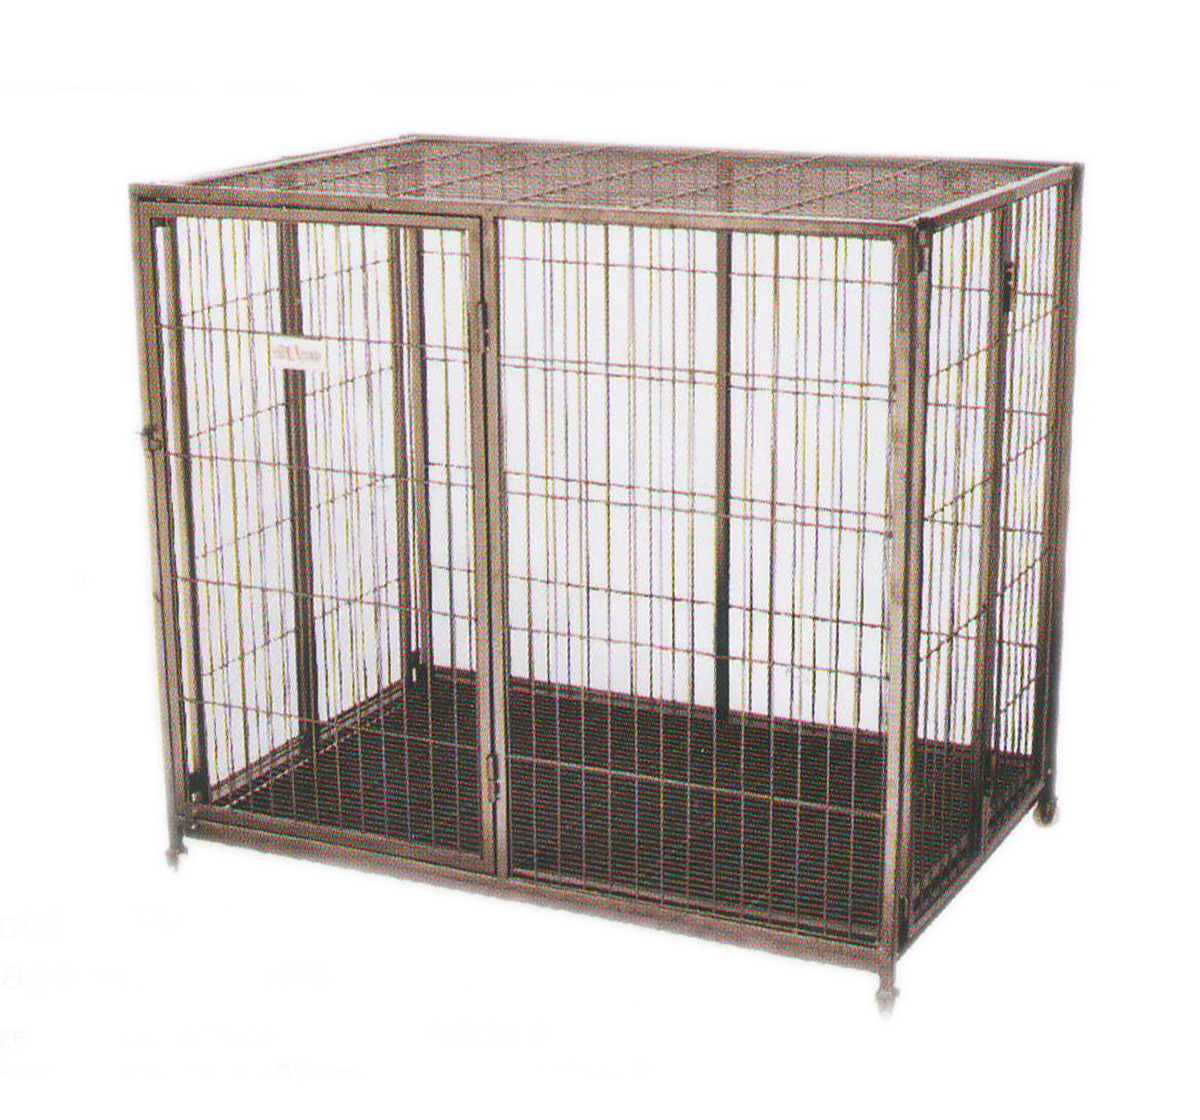 How To Make Cage Of Dog